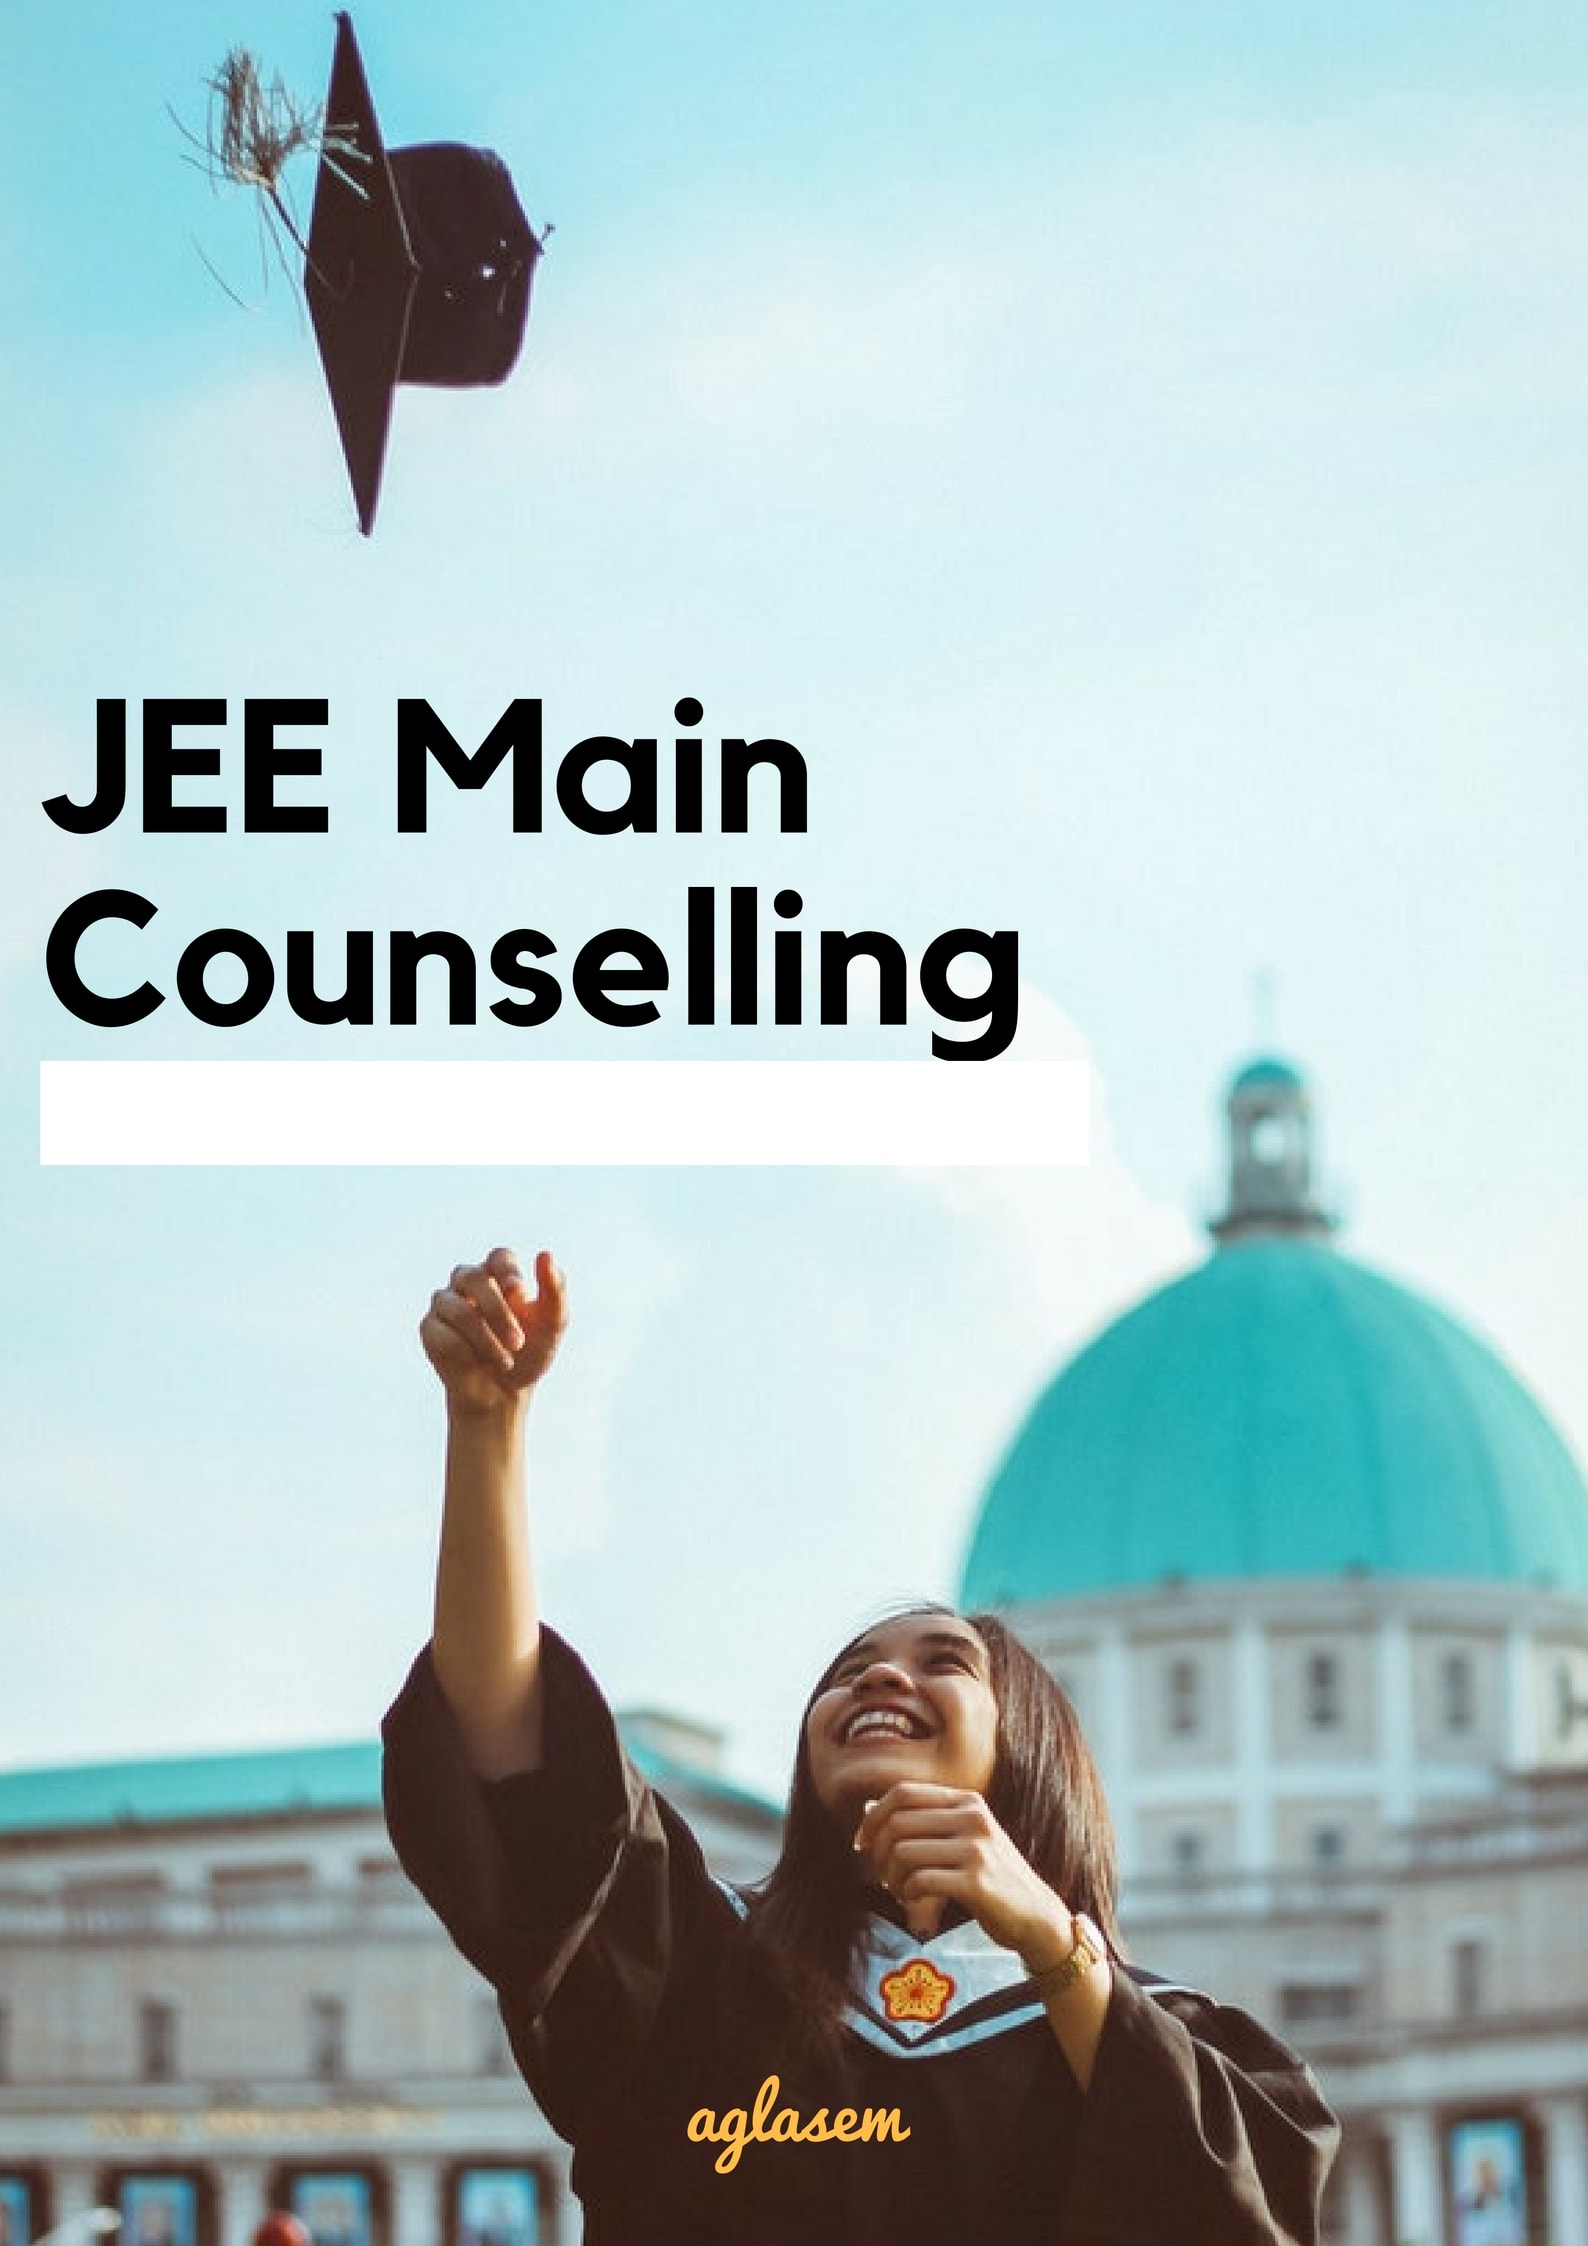 JEE Main 2018 Counselling: Date, Official Website, College List